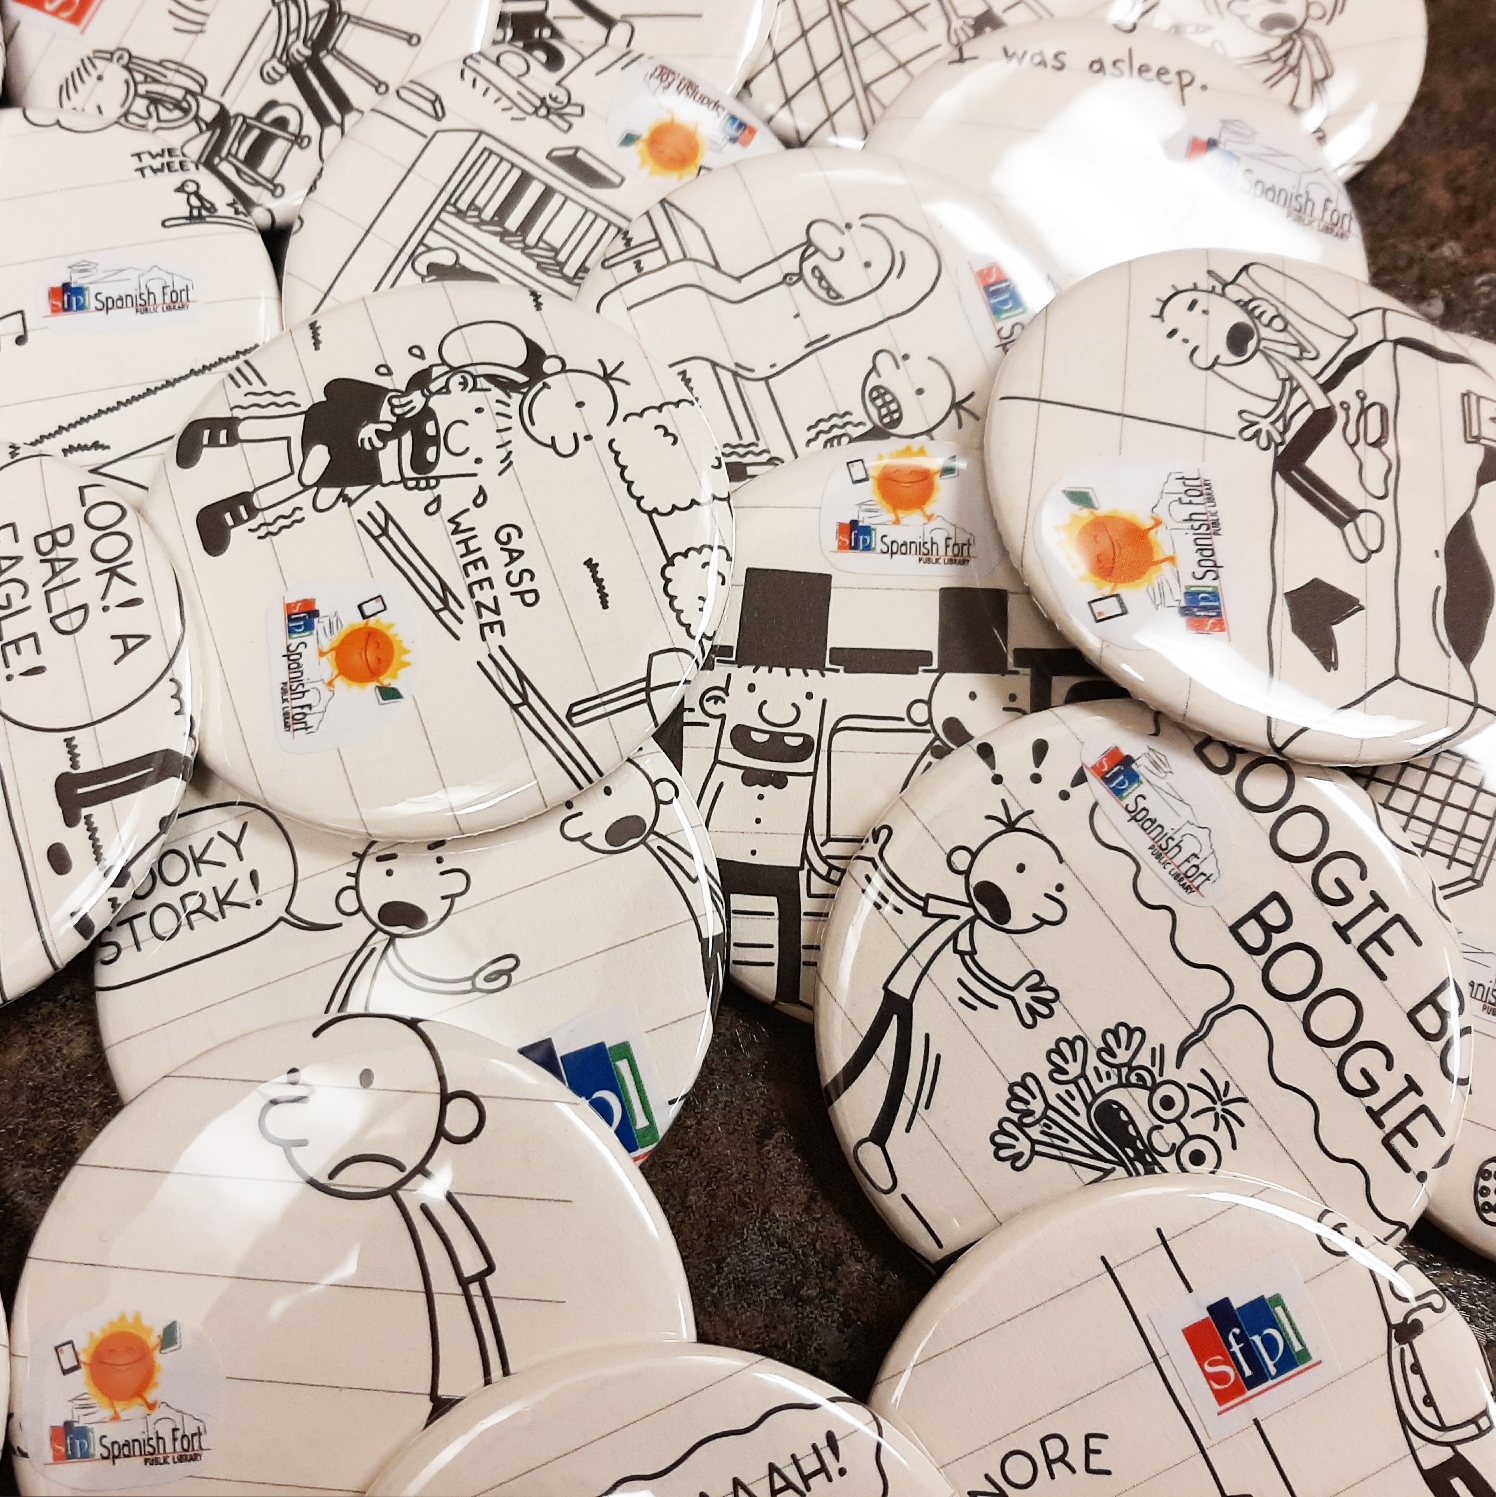 The first participants of the Stinky Cheese Contest will earn a Diary of a Wimpy Kid button! Supplies are limited! After you have submitted the entry form, ask an SFPL staff member for yours! Supplies are limited!